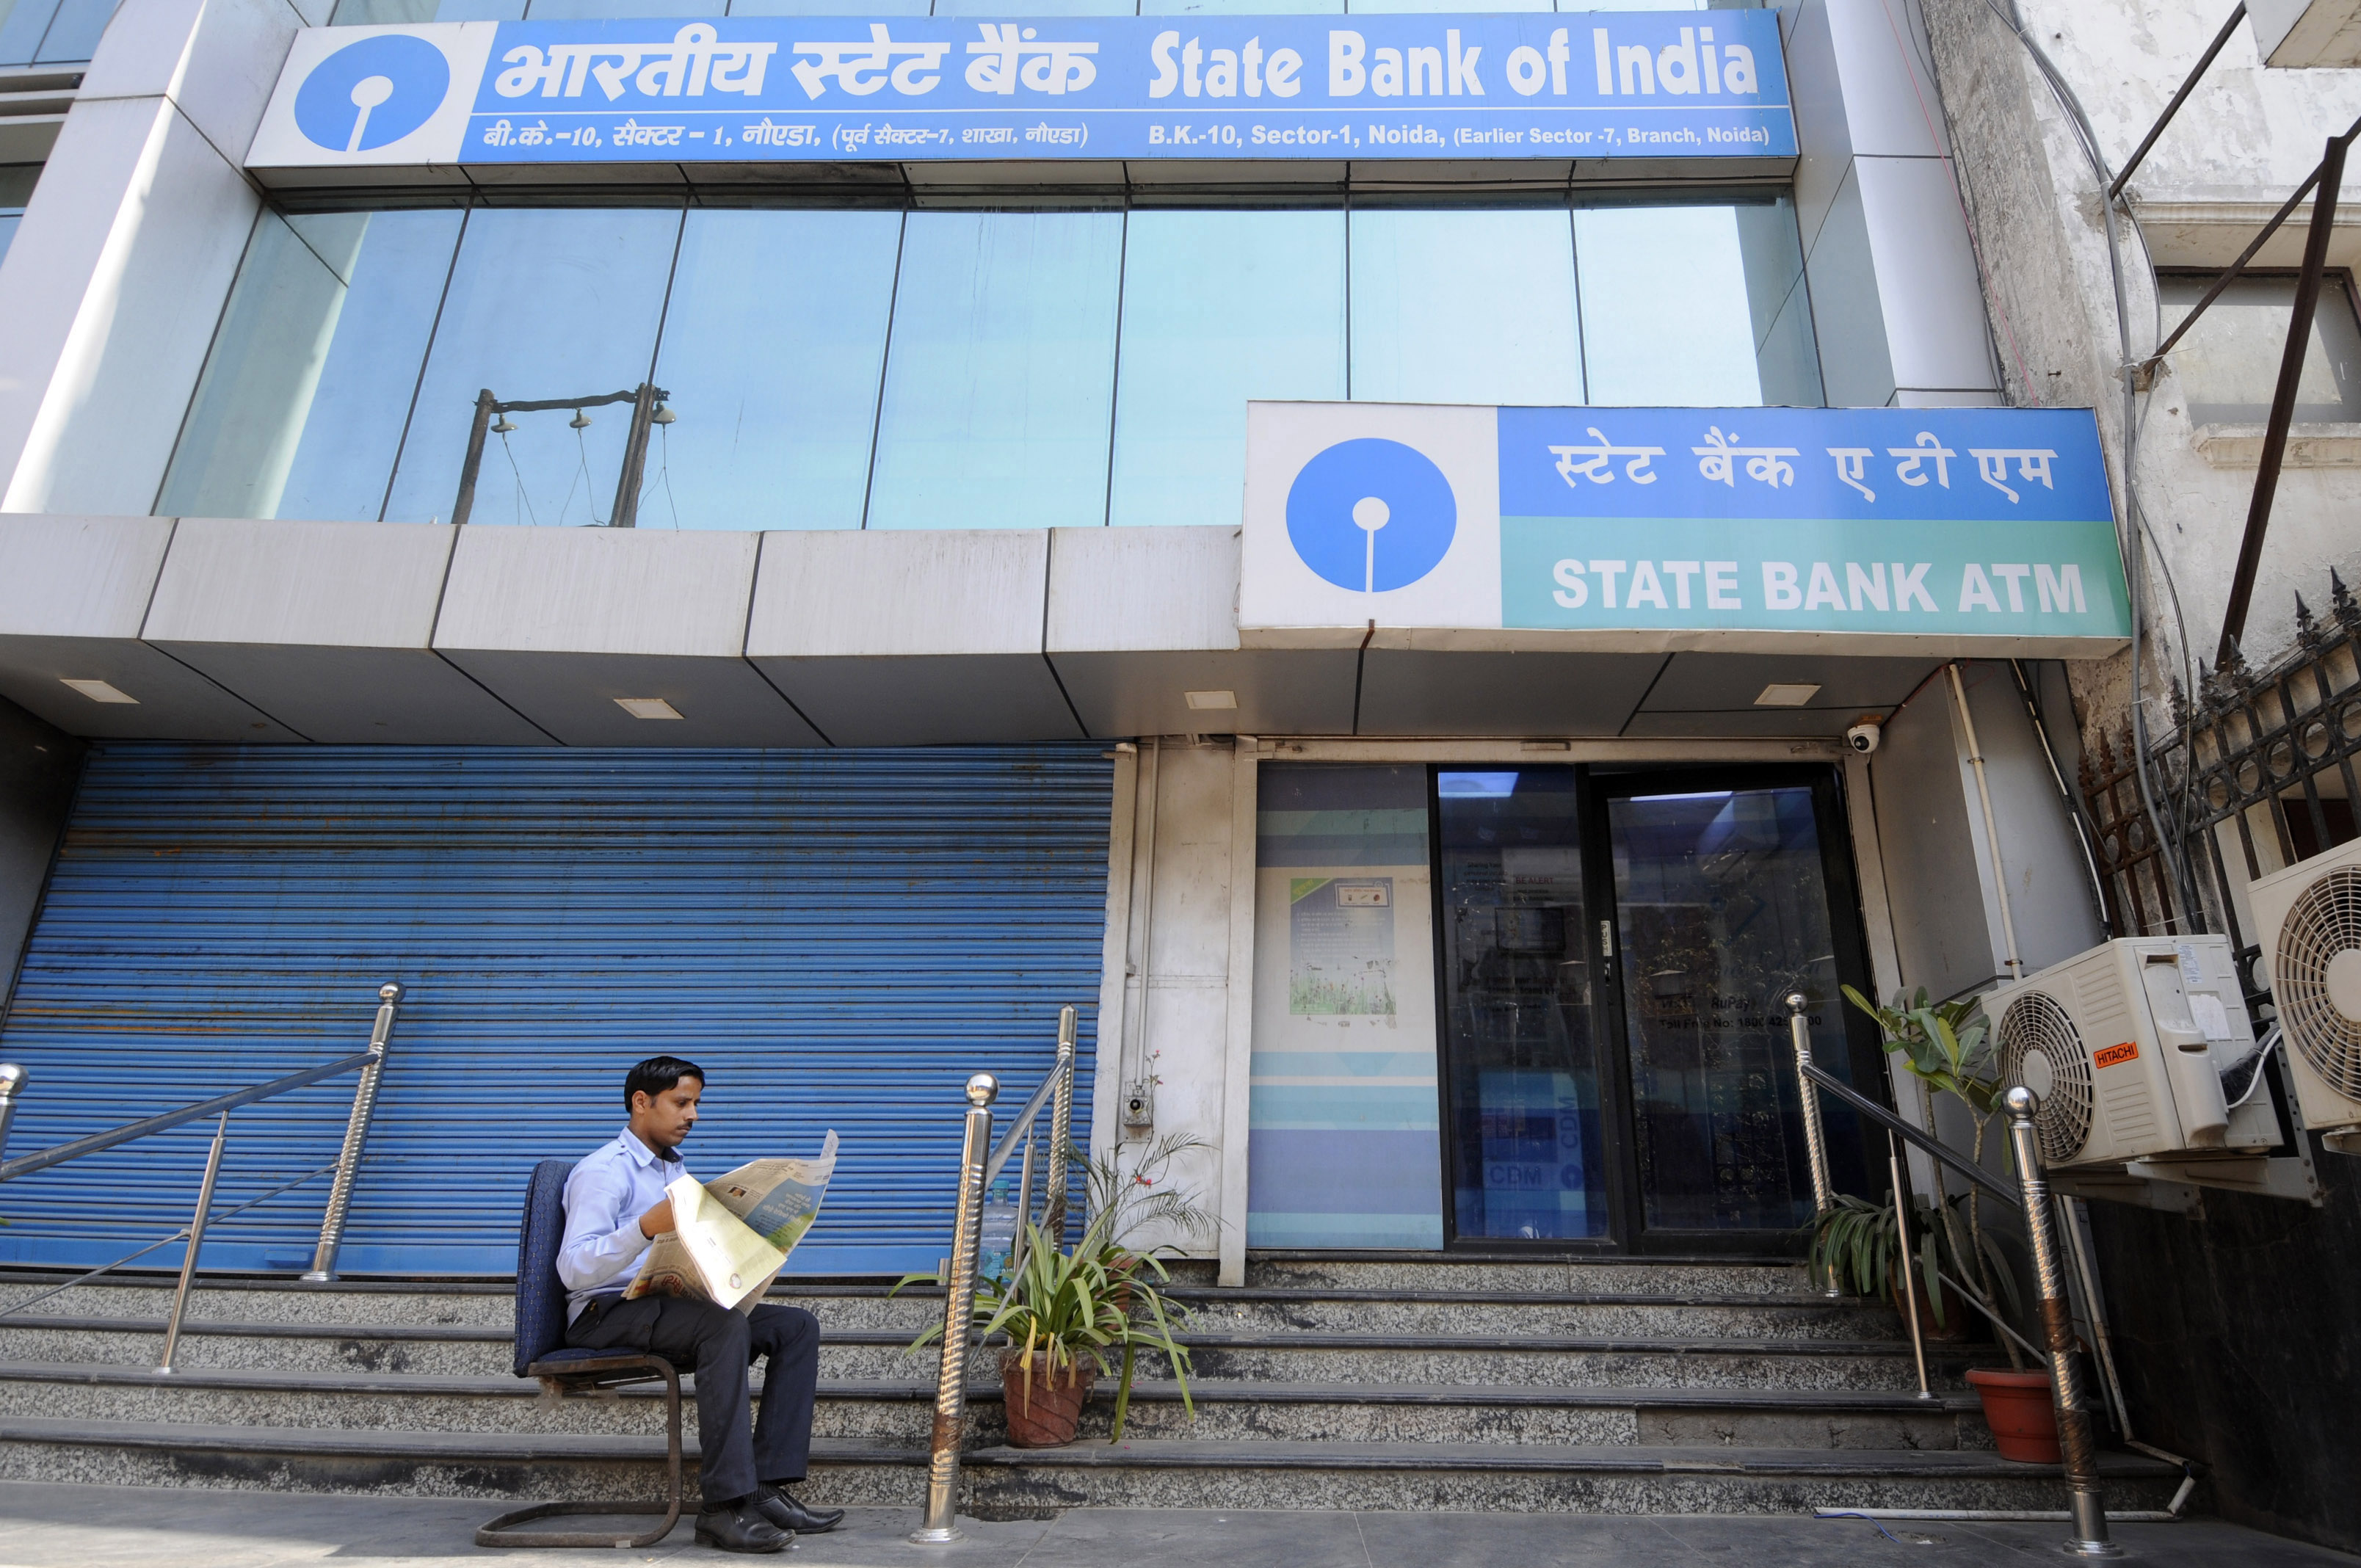 India's largest bank SBI leaked account data on millions of